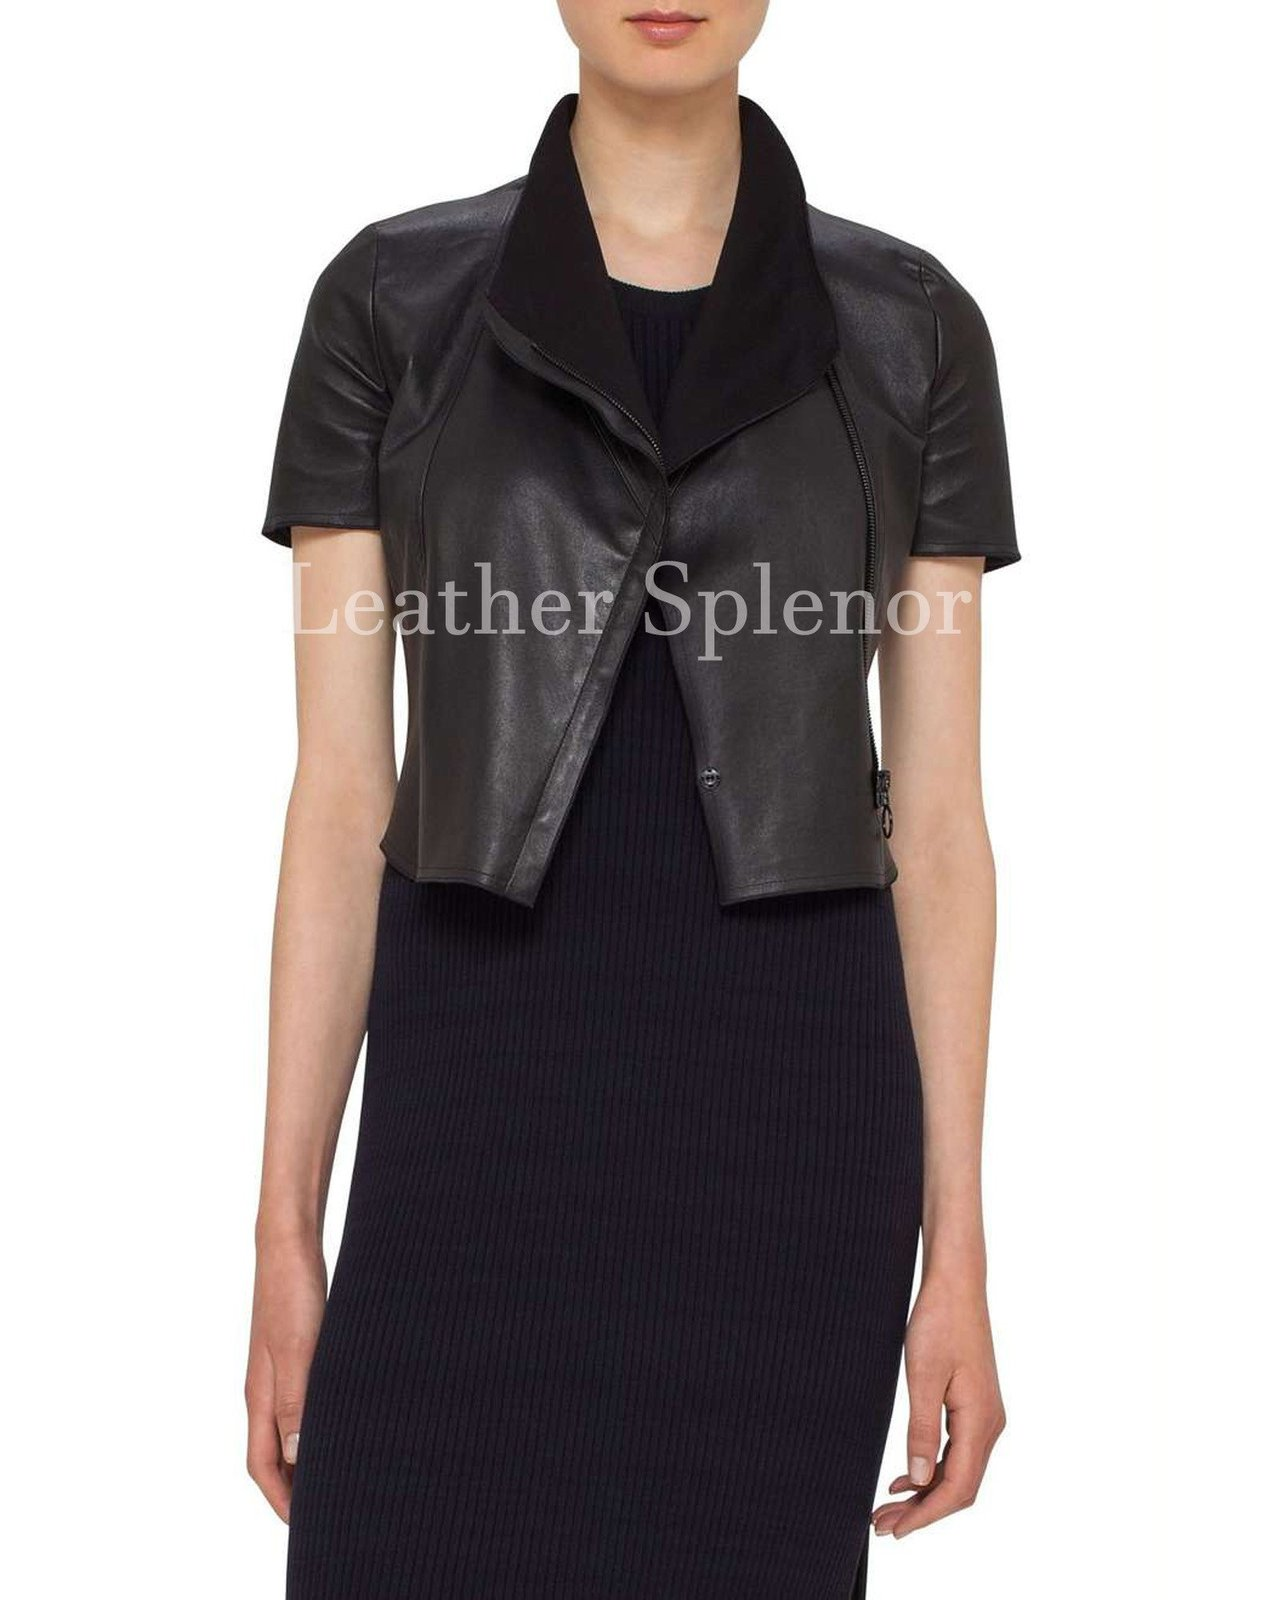 Cropped Short Sleeves Women Leather Jacket